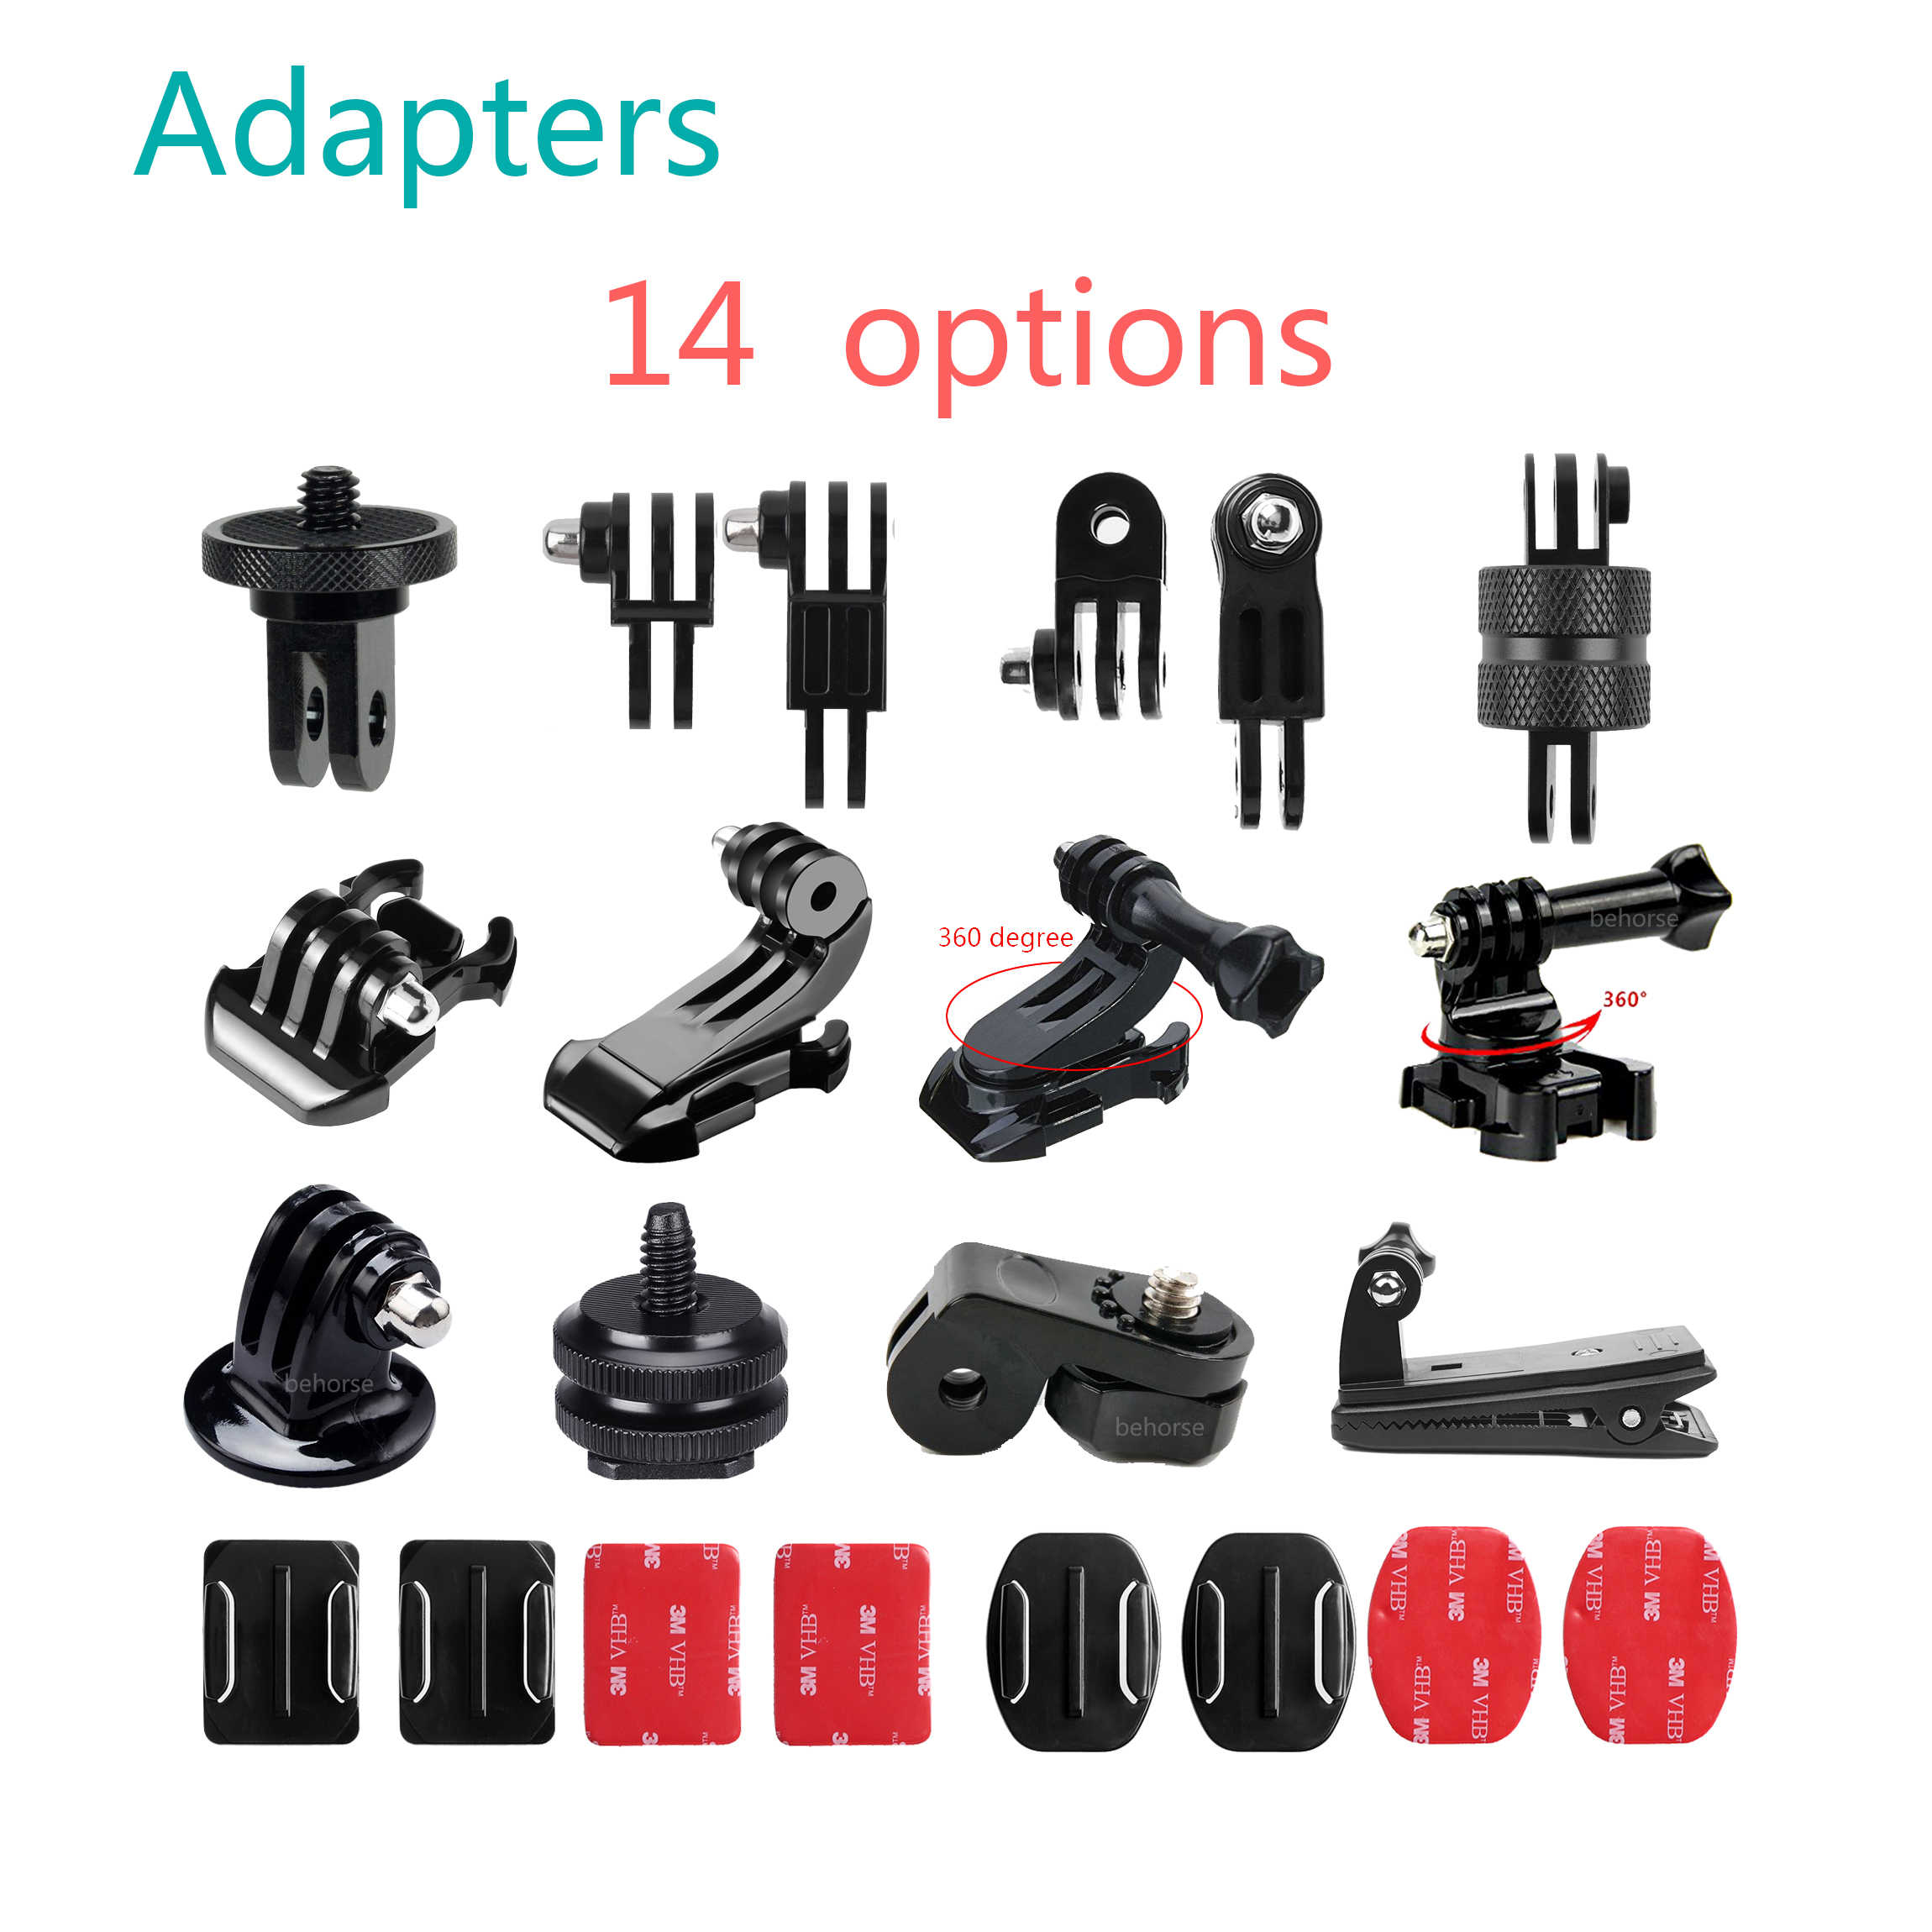 Camera Accessoires Mini Monopod Tripod Holder Case Mount Adapter voor Go Pro Hero 5 4 3 + SJ4000 Xiaomi Yi camera Adapter Schroeven